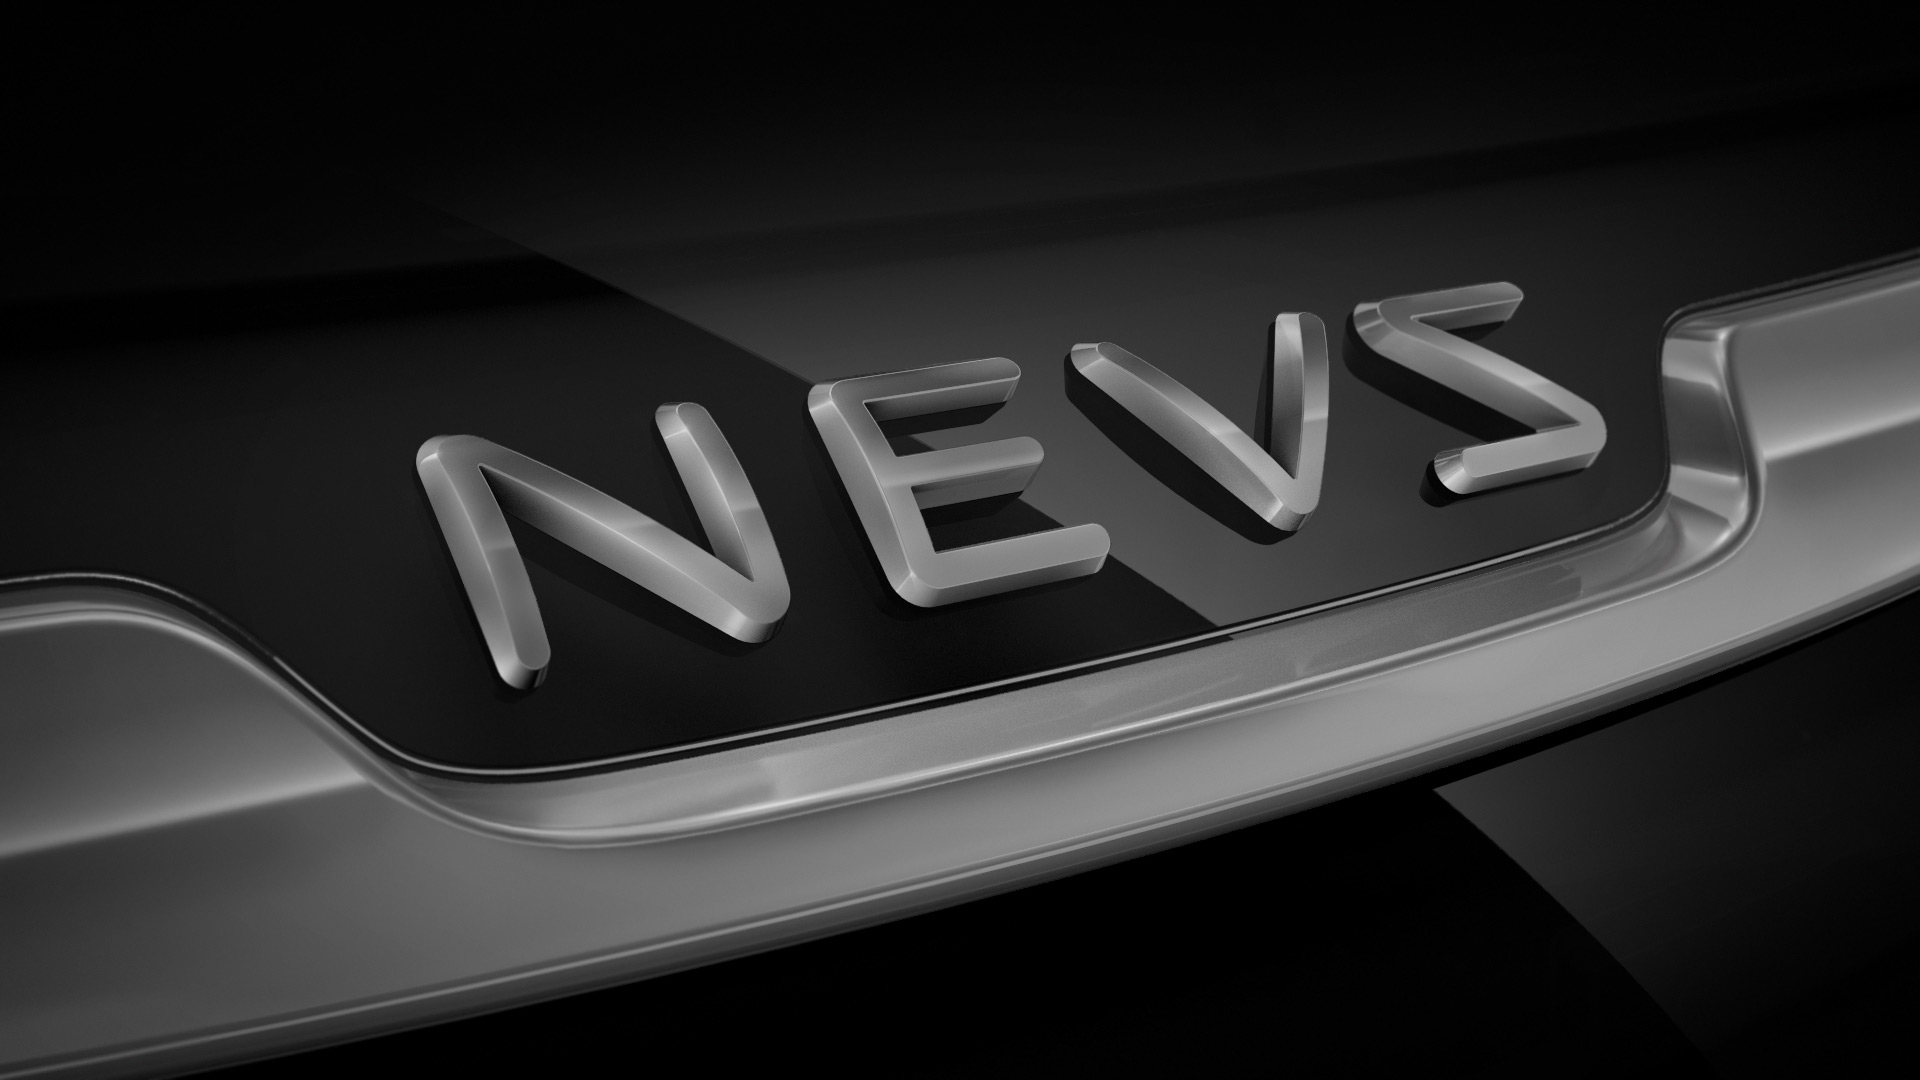 Saab cars officially dead as new owner rolls out NEVS brand